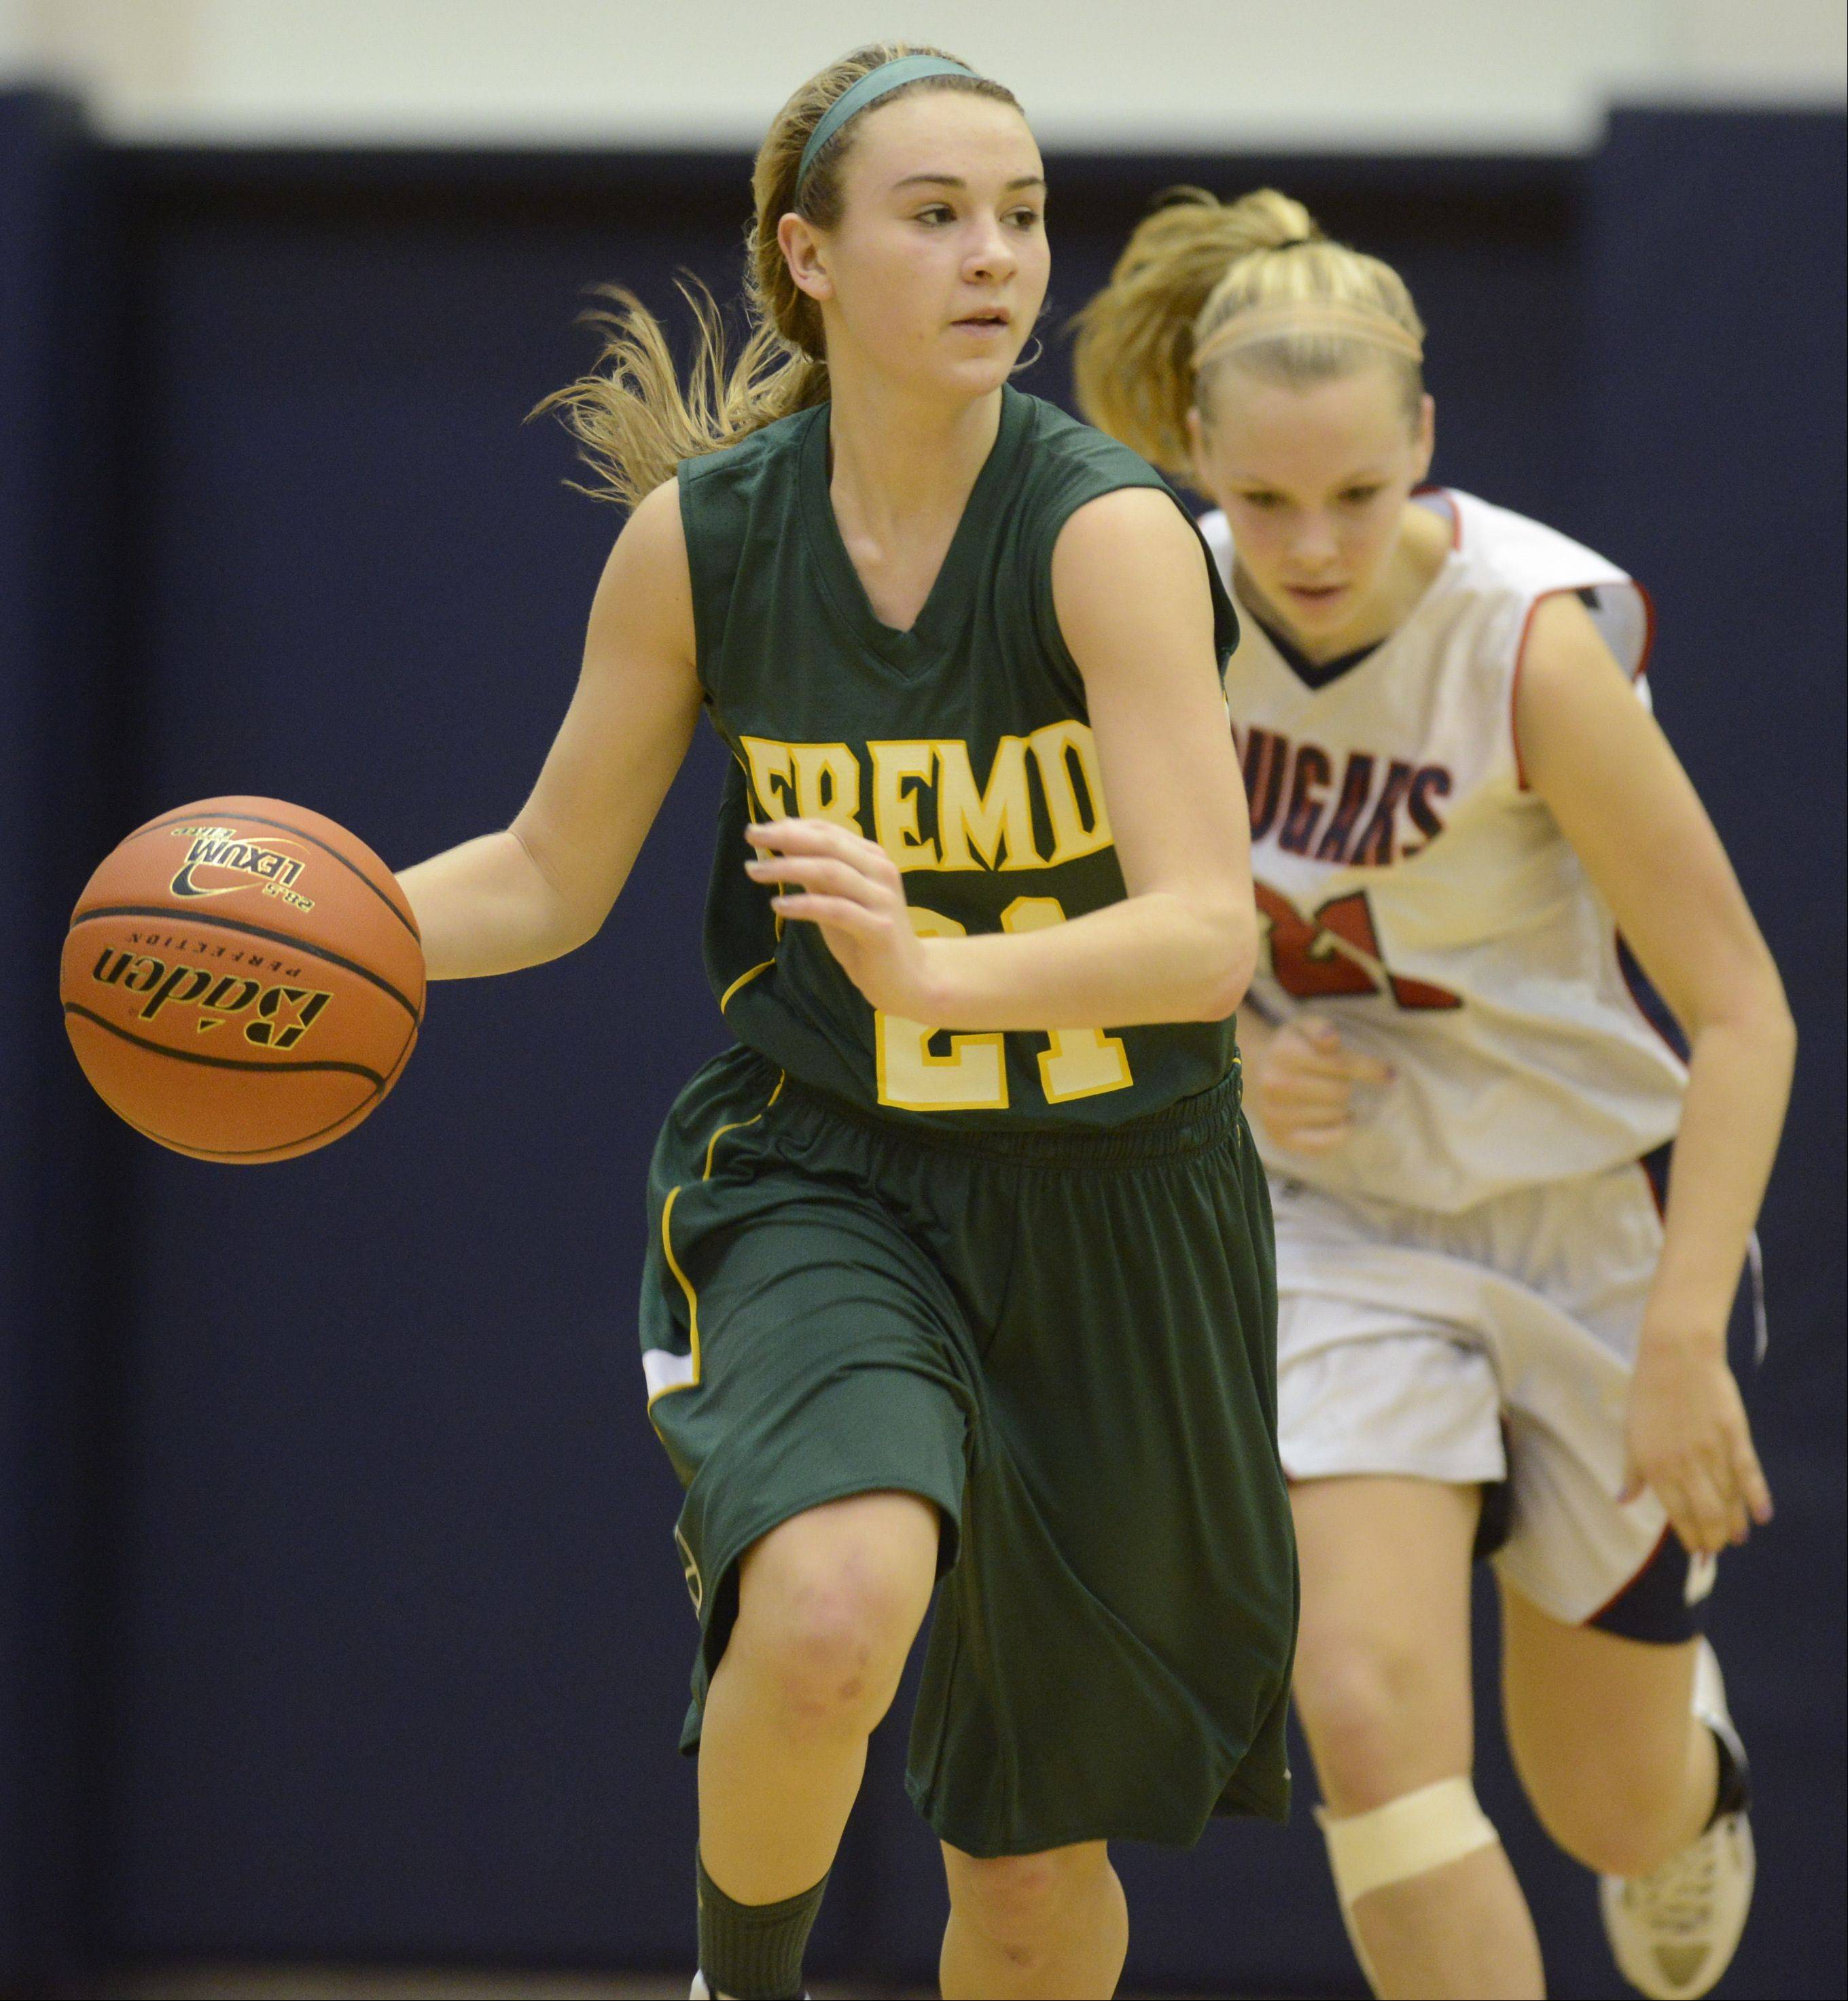 Images from the Fremd vs. Conant girls basketball game on Tuesday, January 29th, in Hoffman Estates.